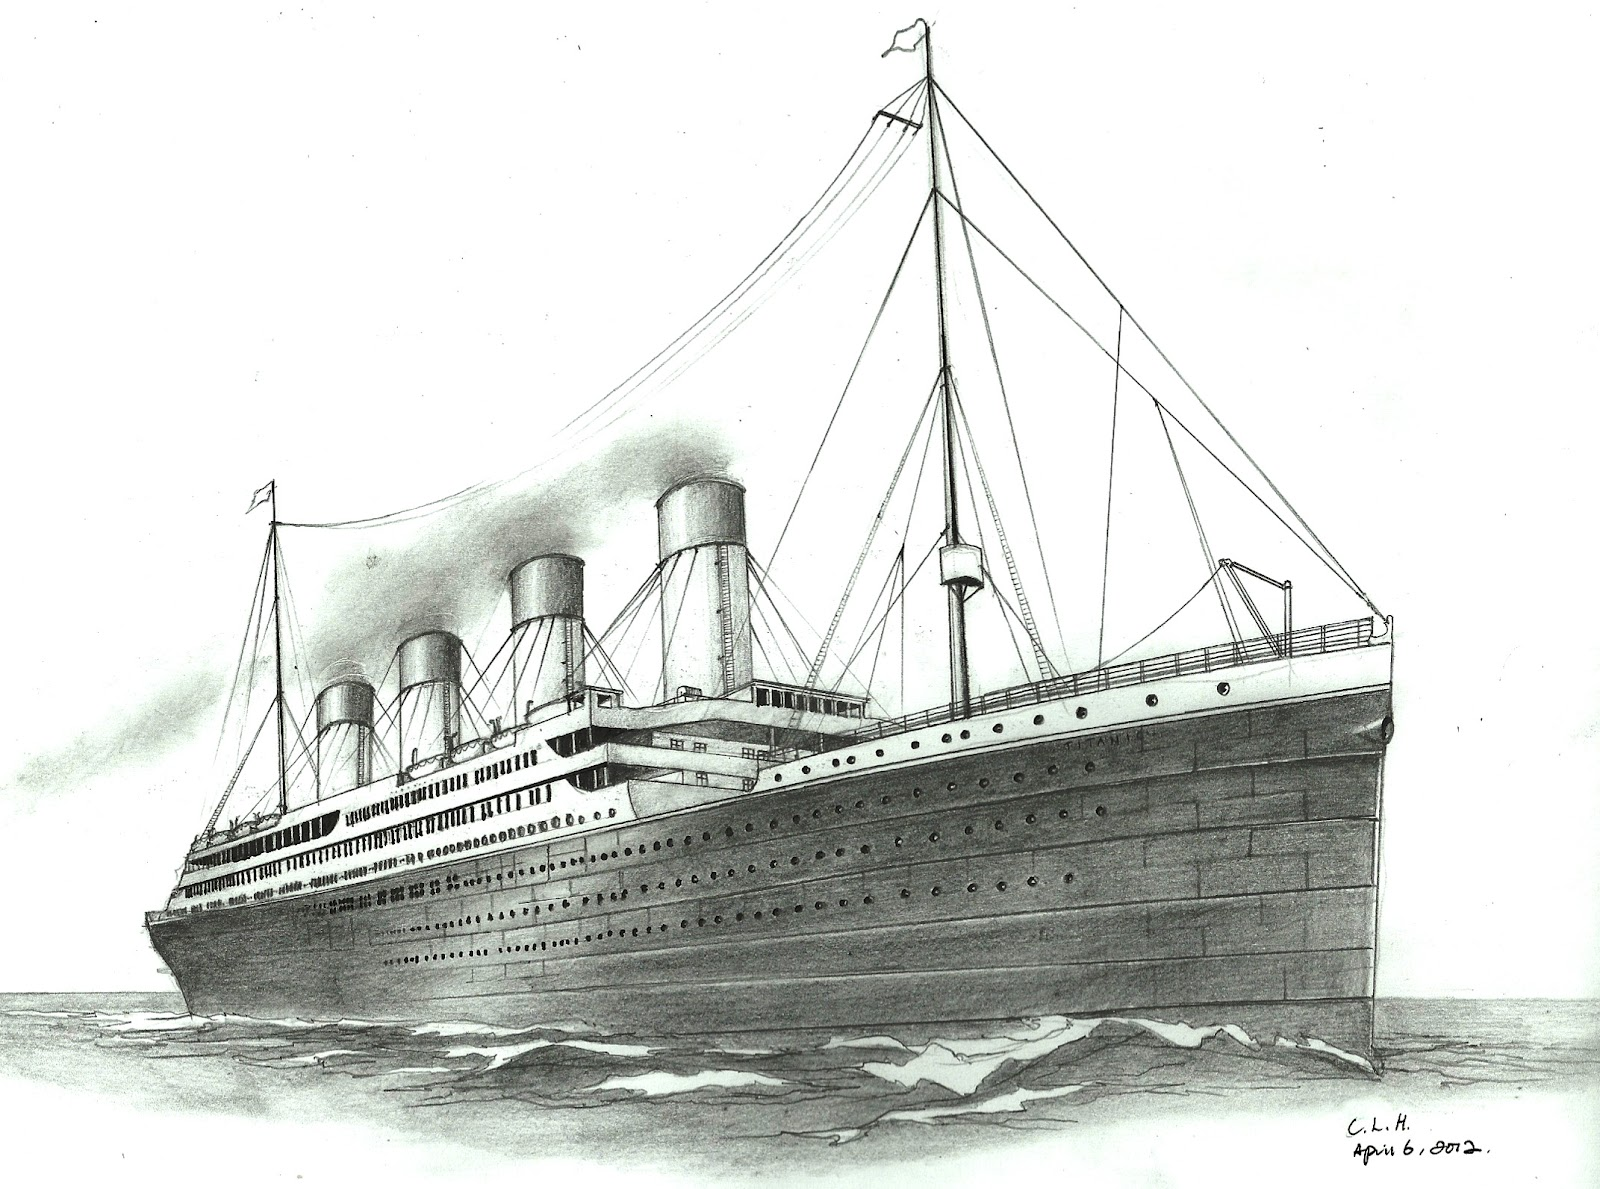 Drawn titanic awesome Pencil Images Art Drawing Titanic